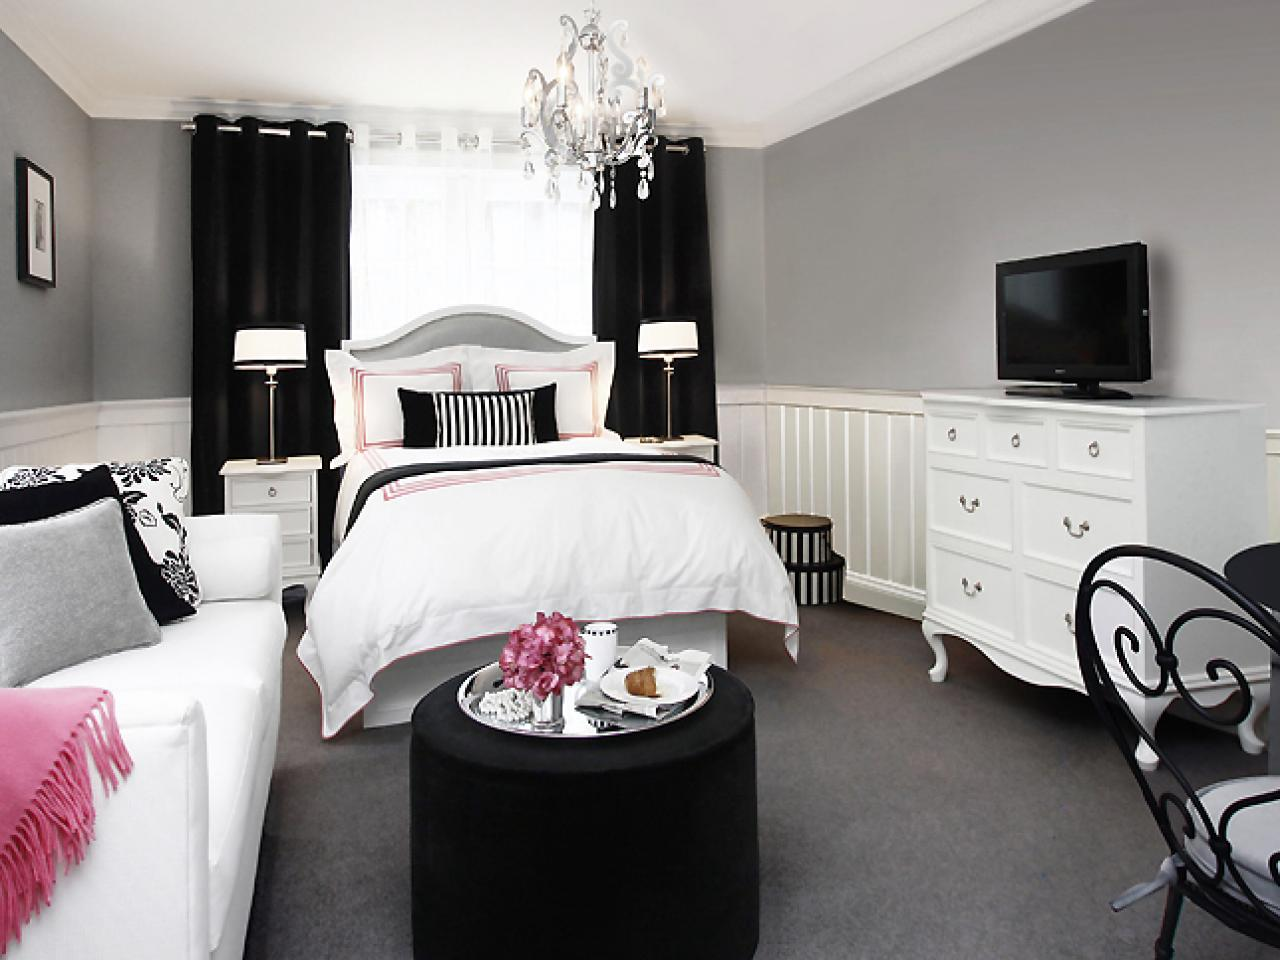 Optimize your small bedroom design hgtv for Black and white bedroom ideas for small rooms